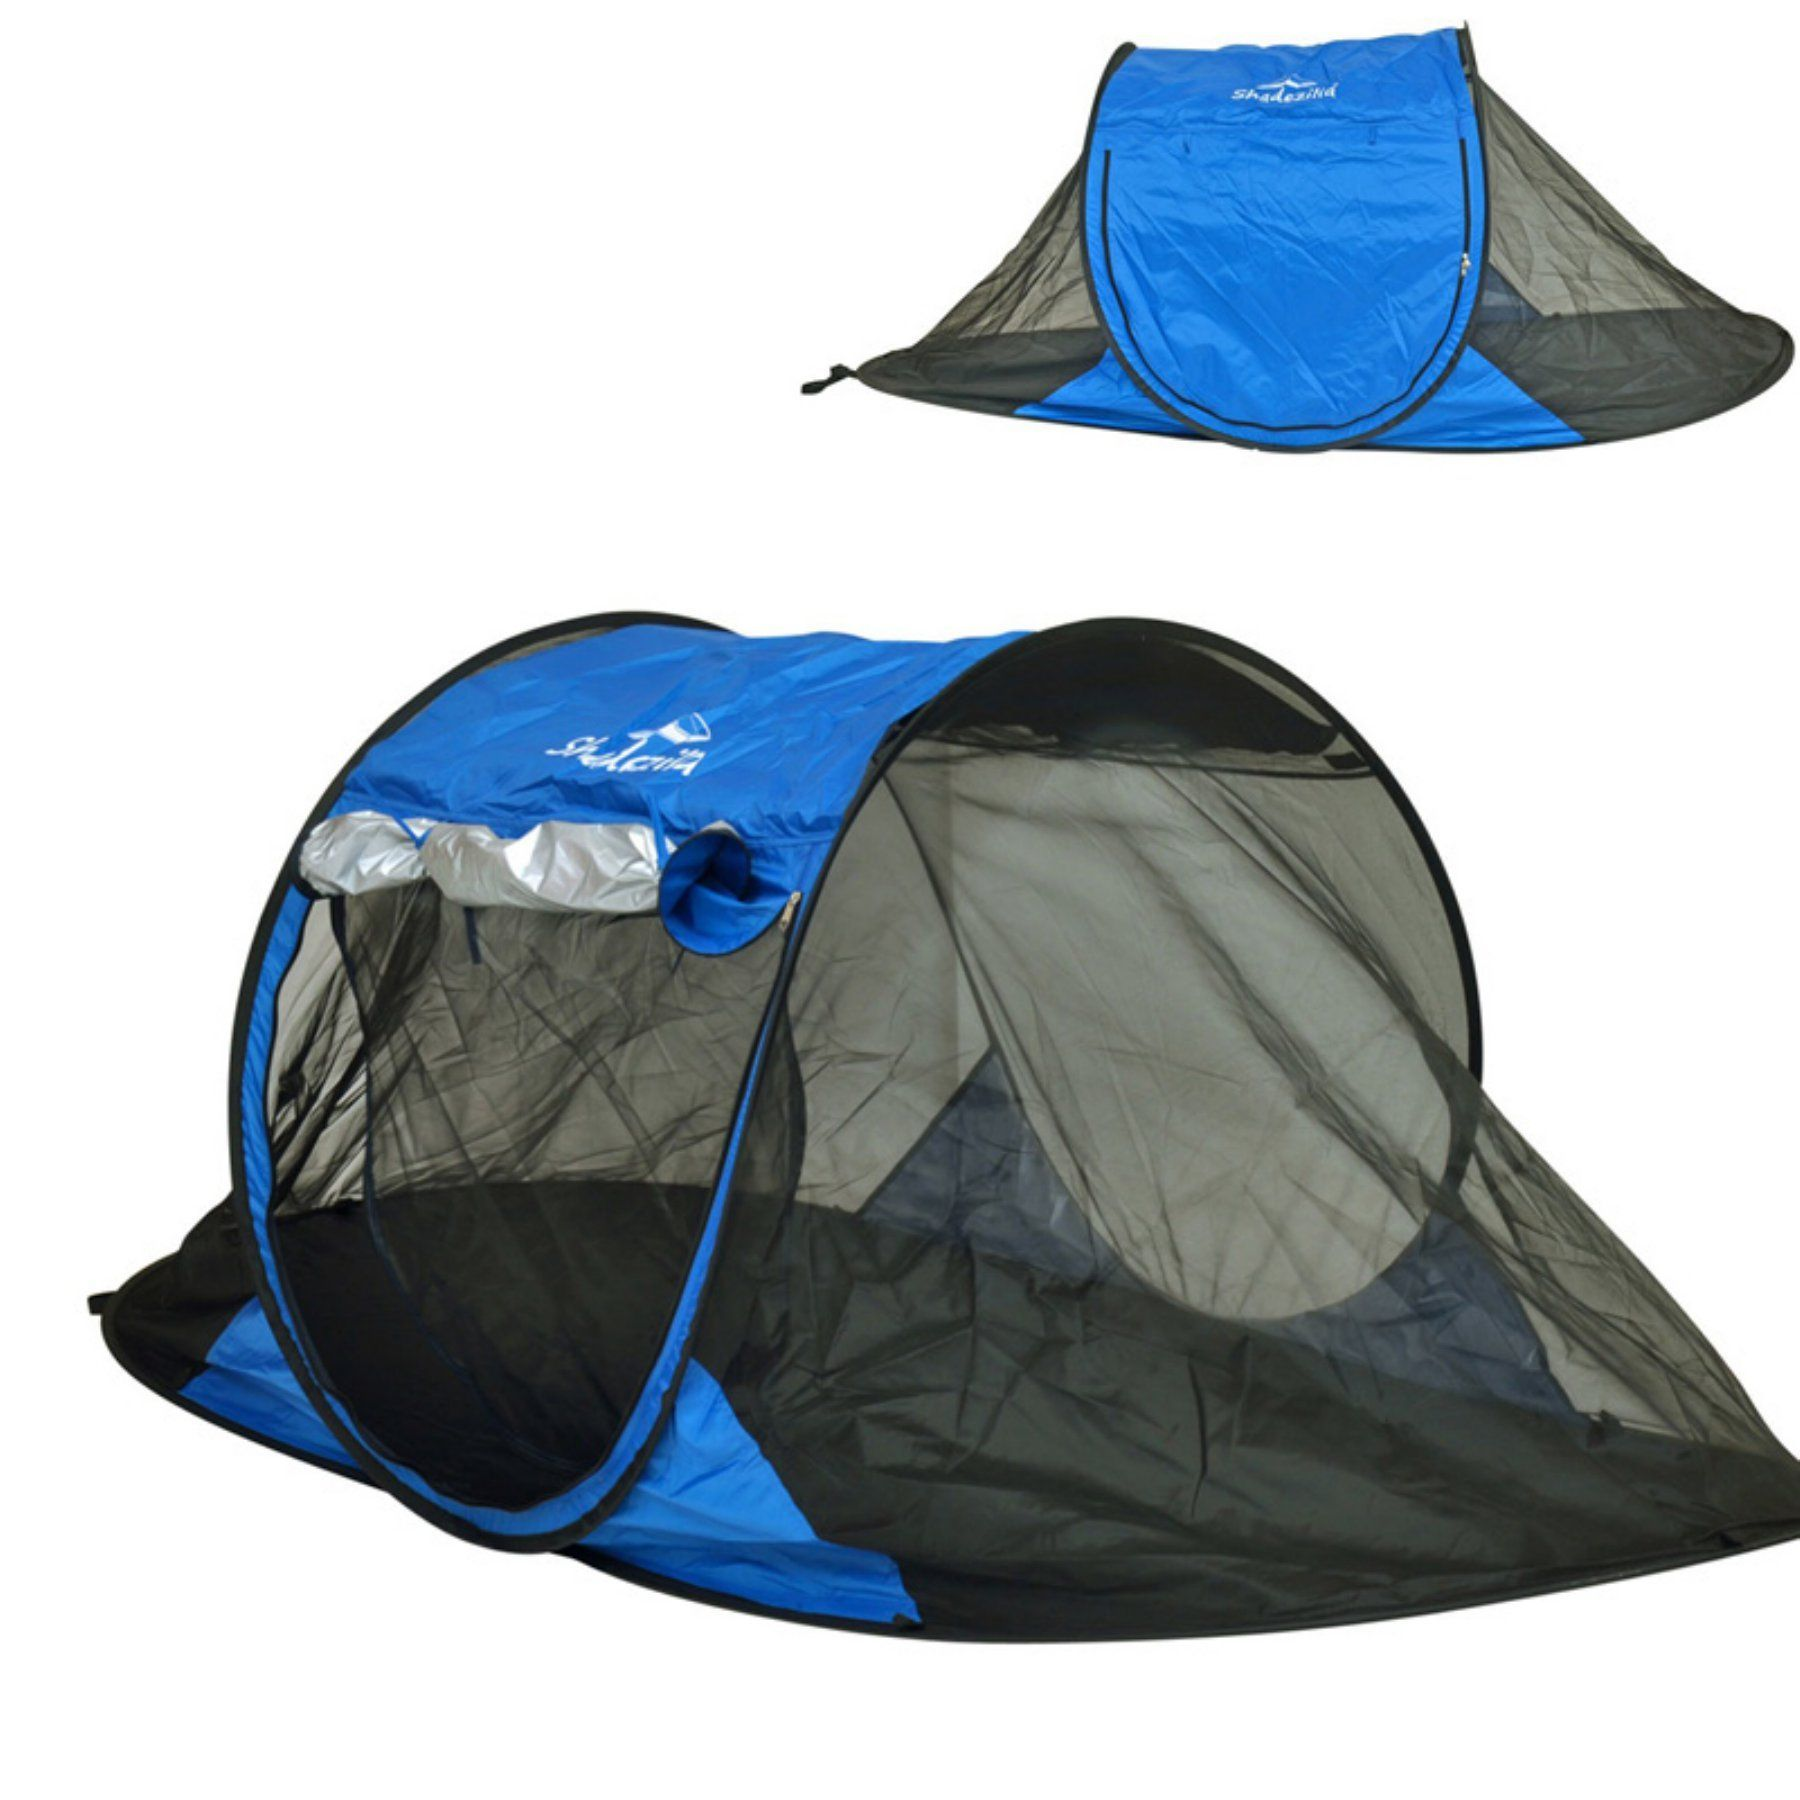 Wenzel 2 Person Sprout Tent Blue